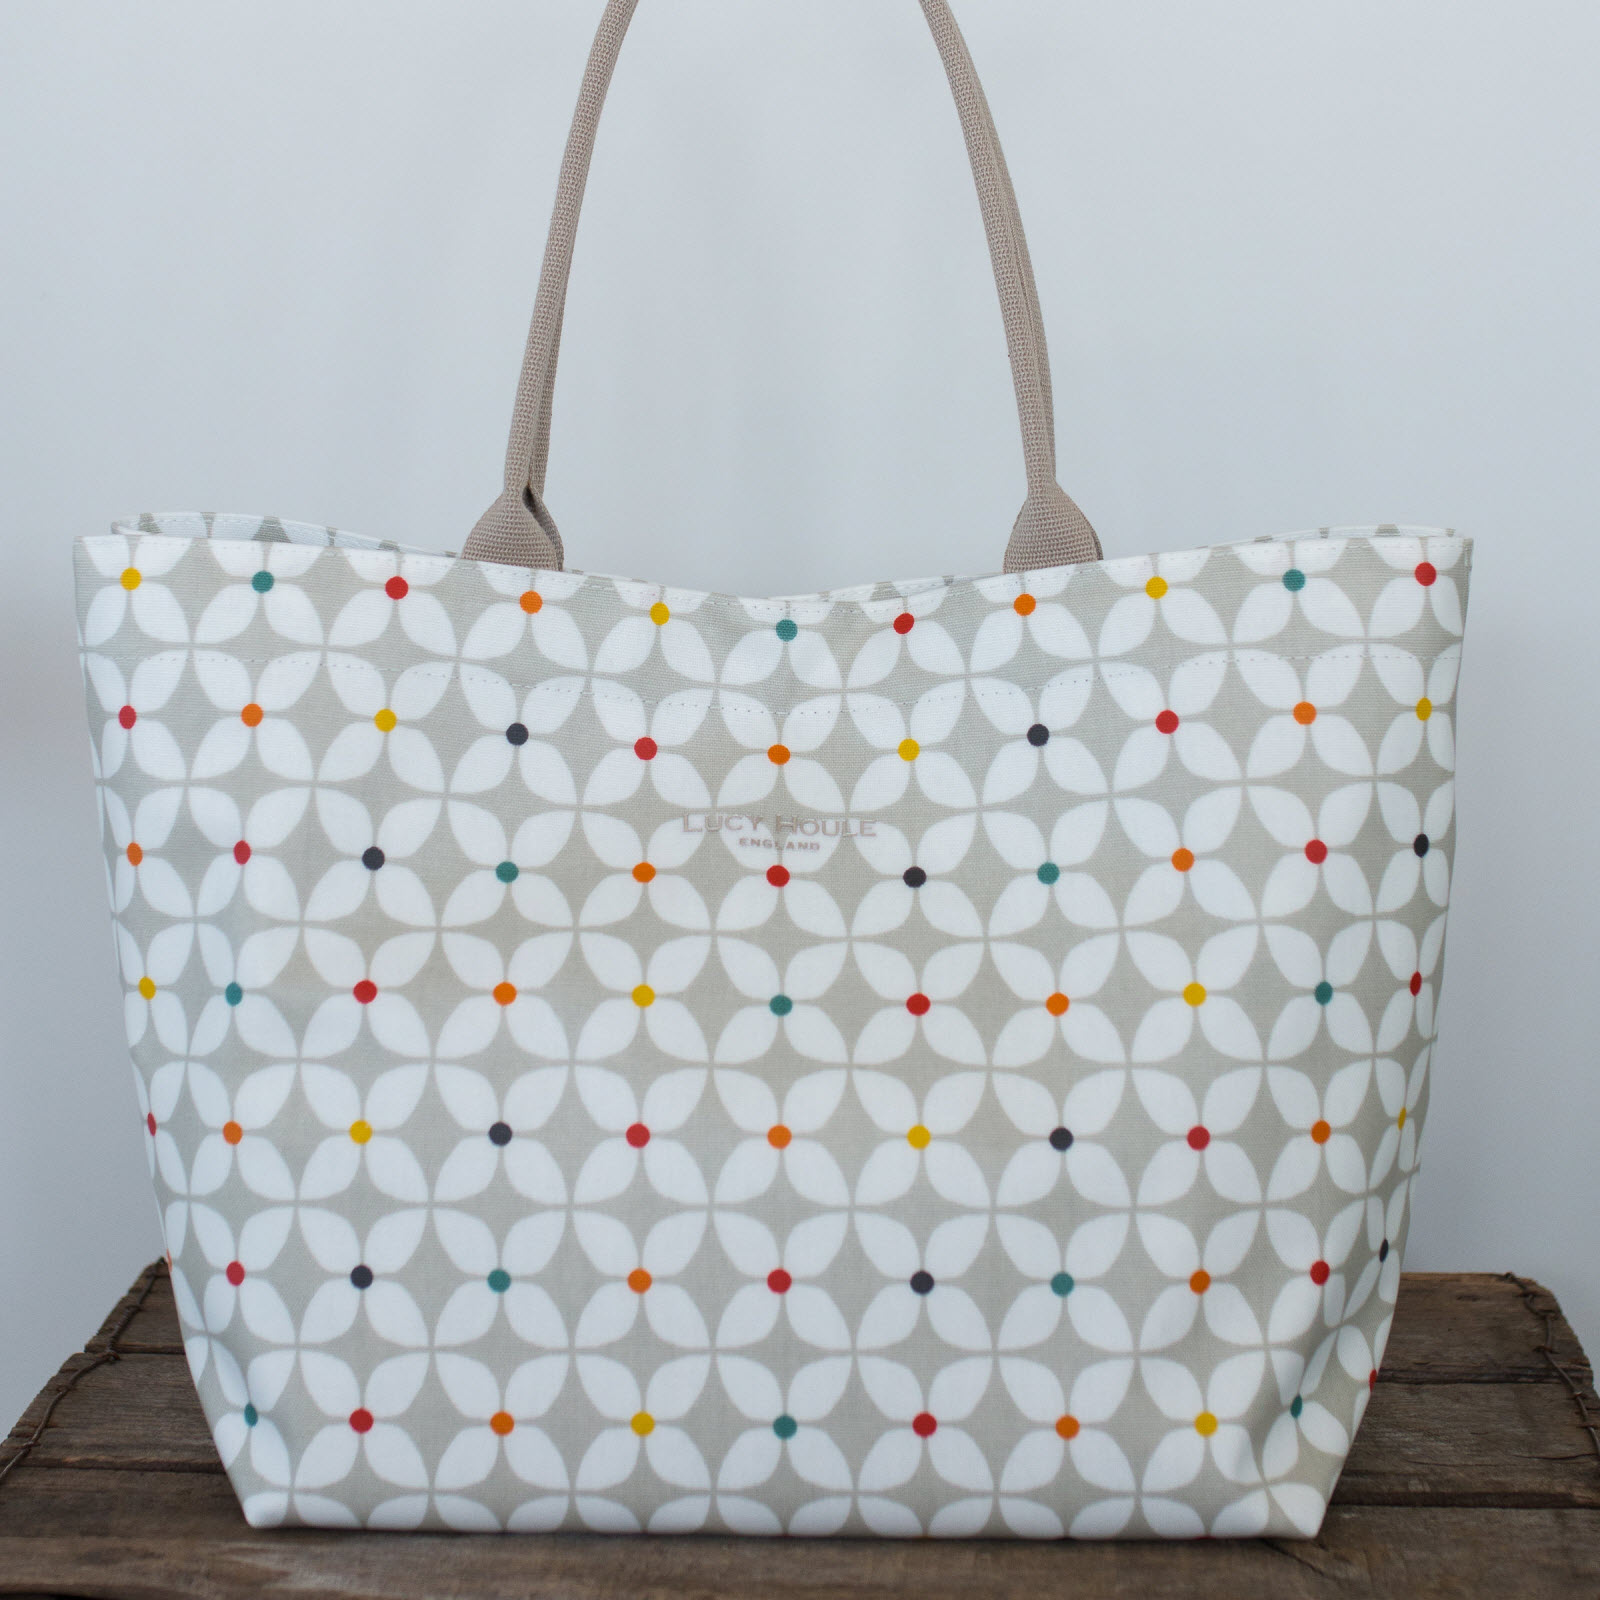 Modern Daisy Taupe Medium Tote Bag with Taupe Handles